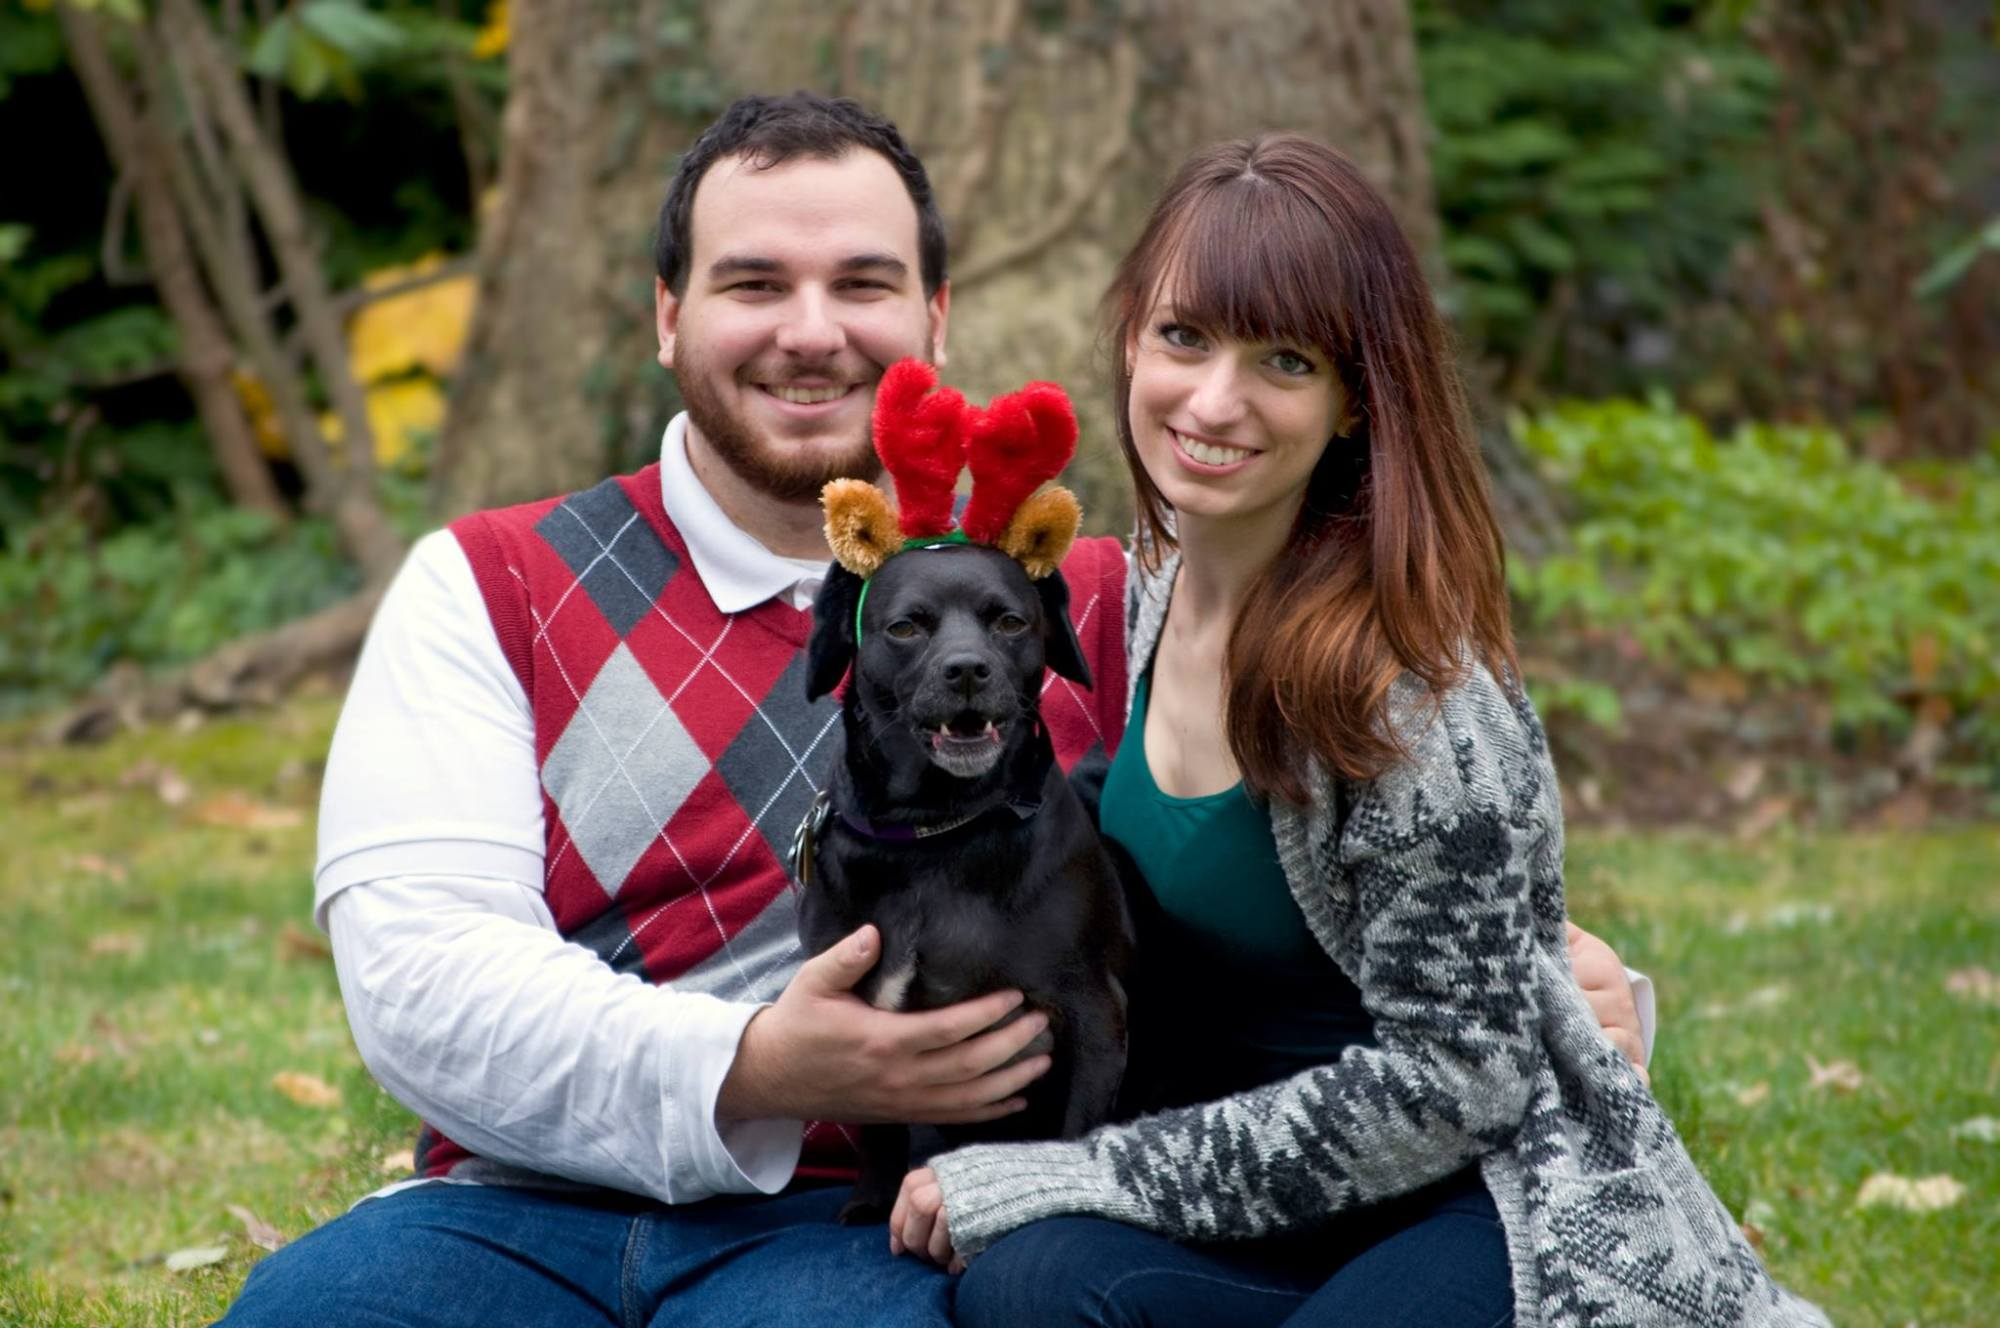 Pet photography in Brooklyn, New York City - Rochelle BaRoss | The Cheerful Times